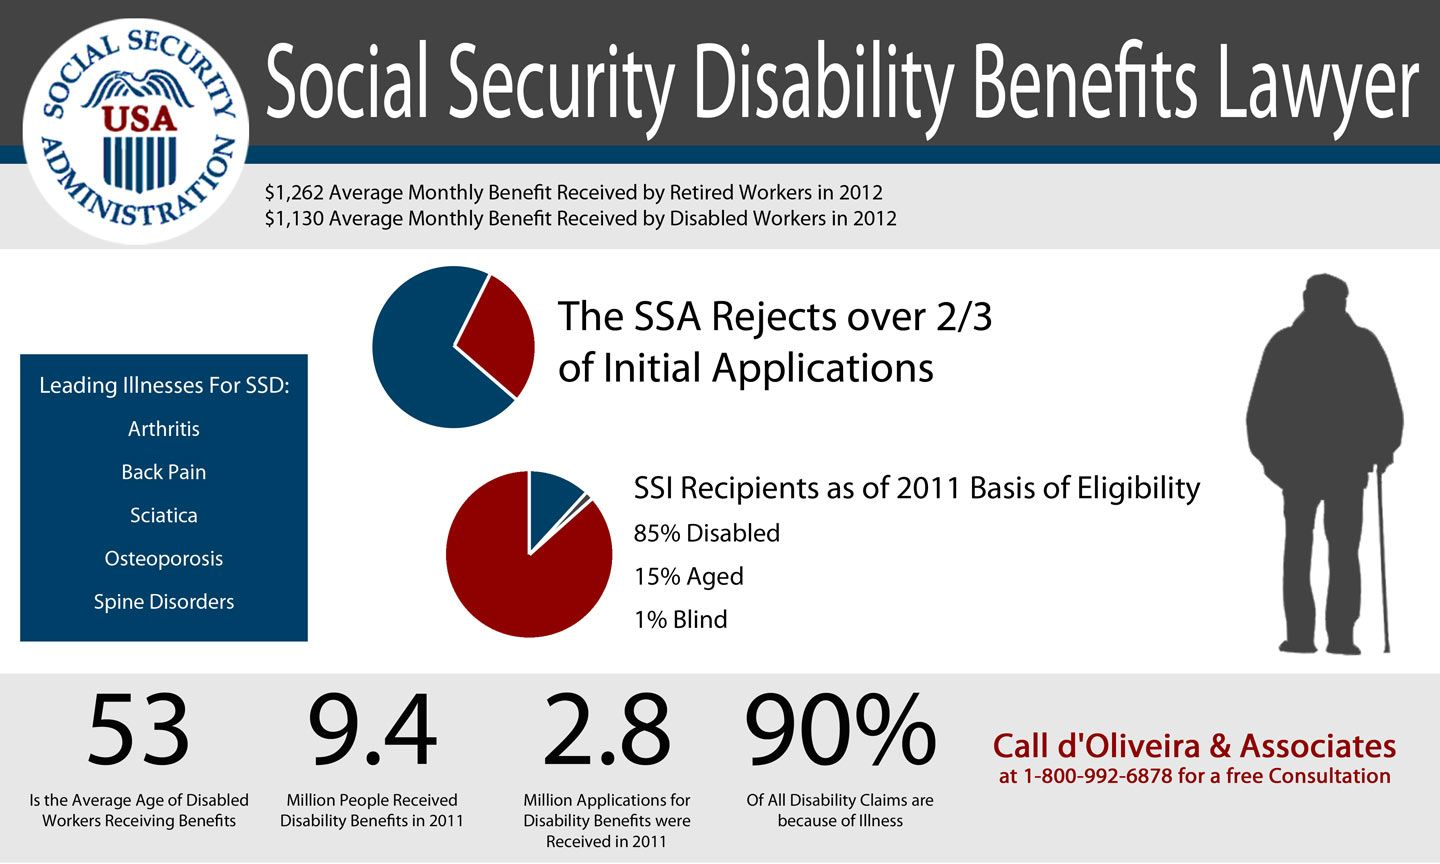 Social Security Disability Benefits Lawyer Infographic From D